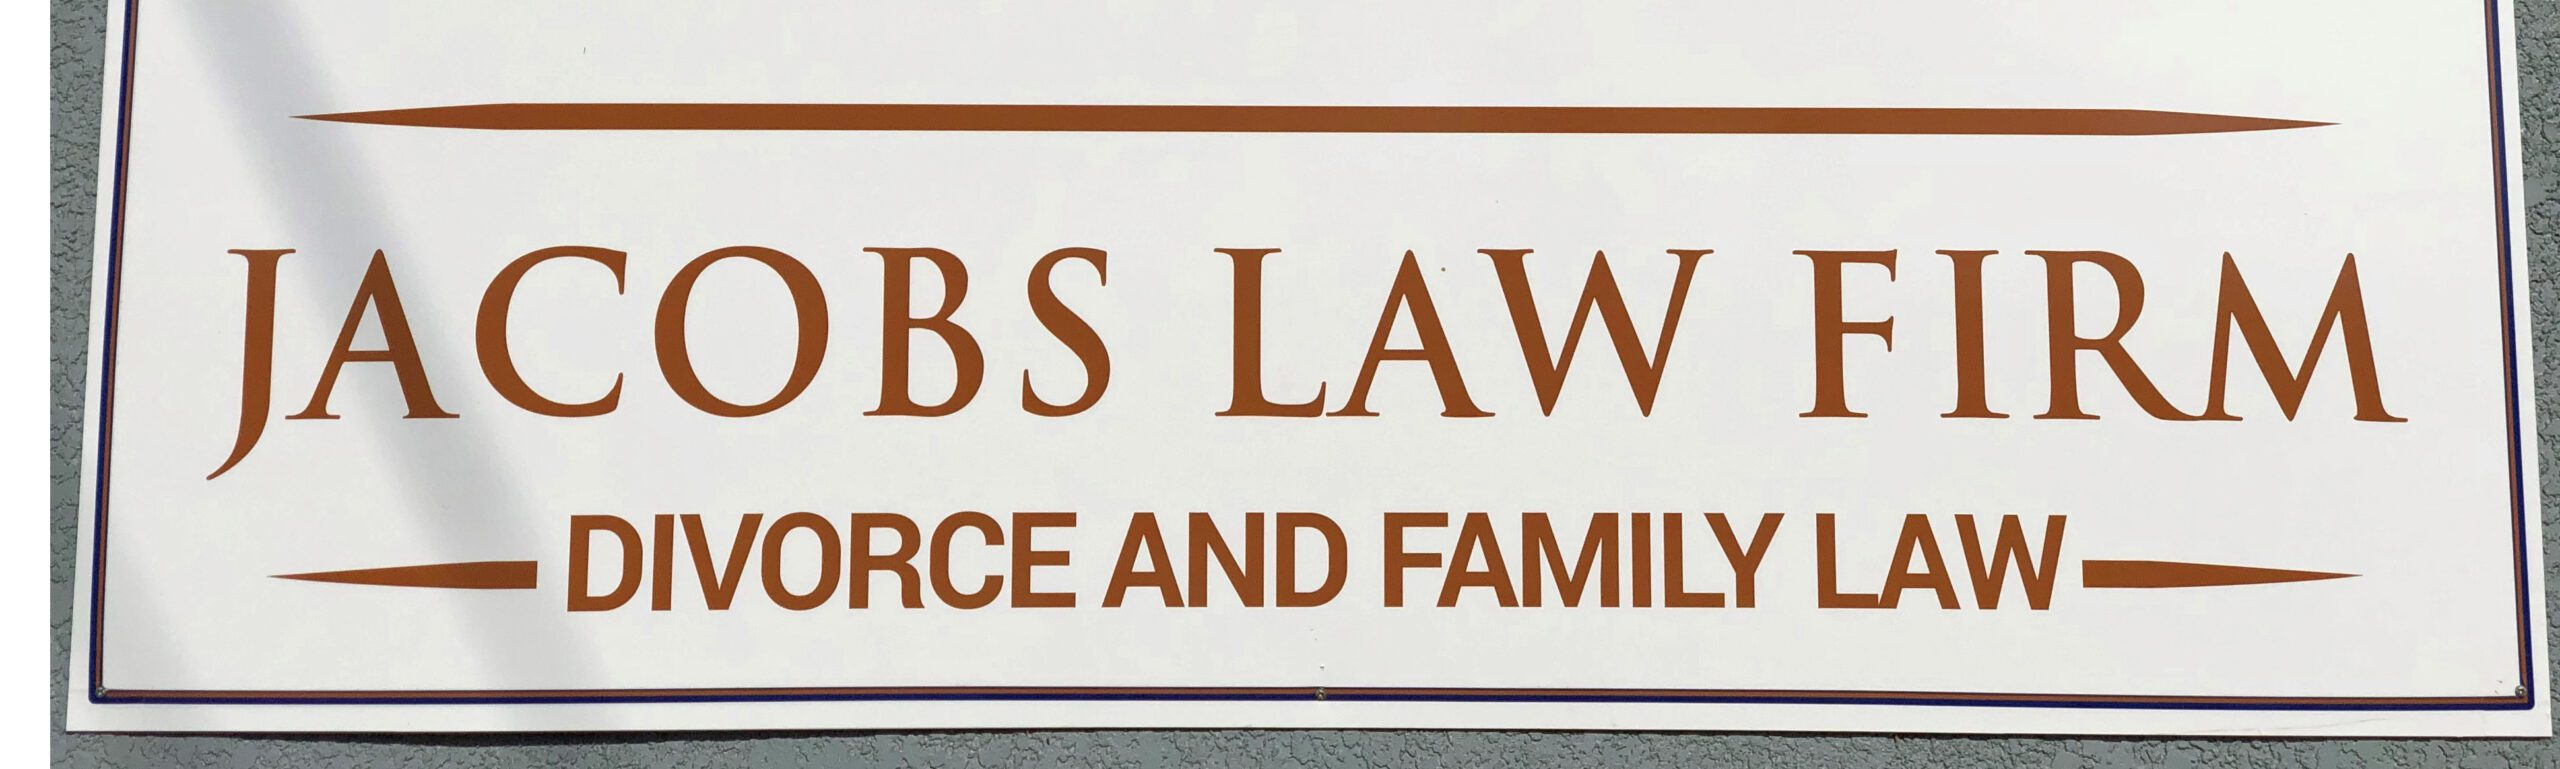 Jacobs Law Firm